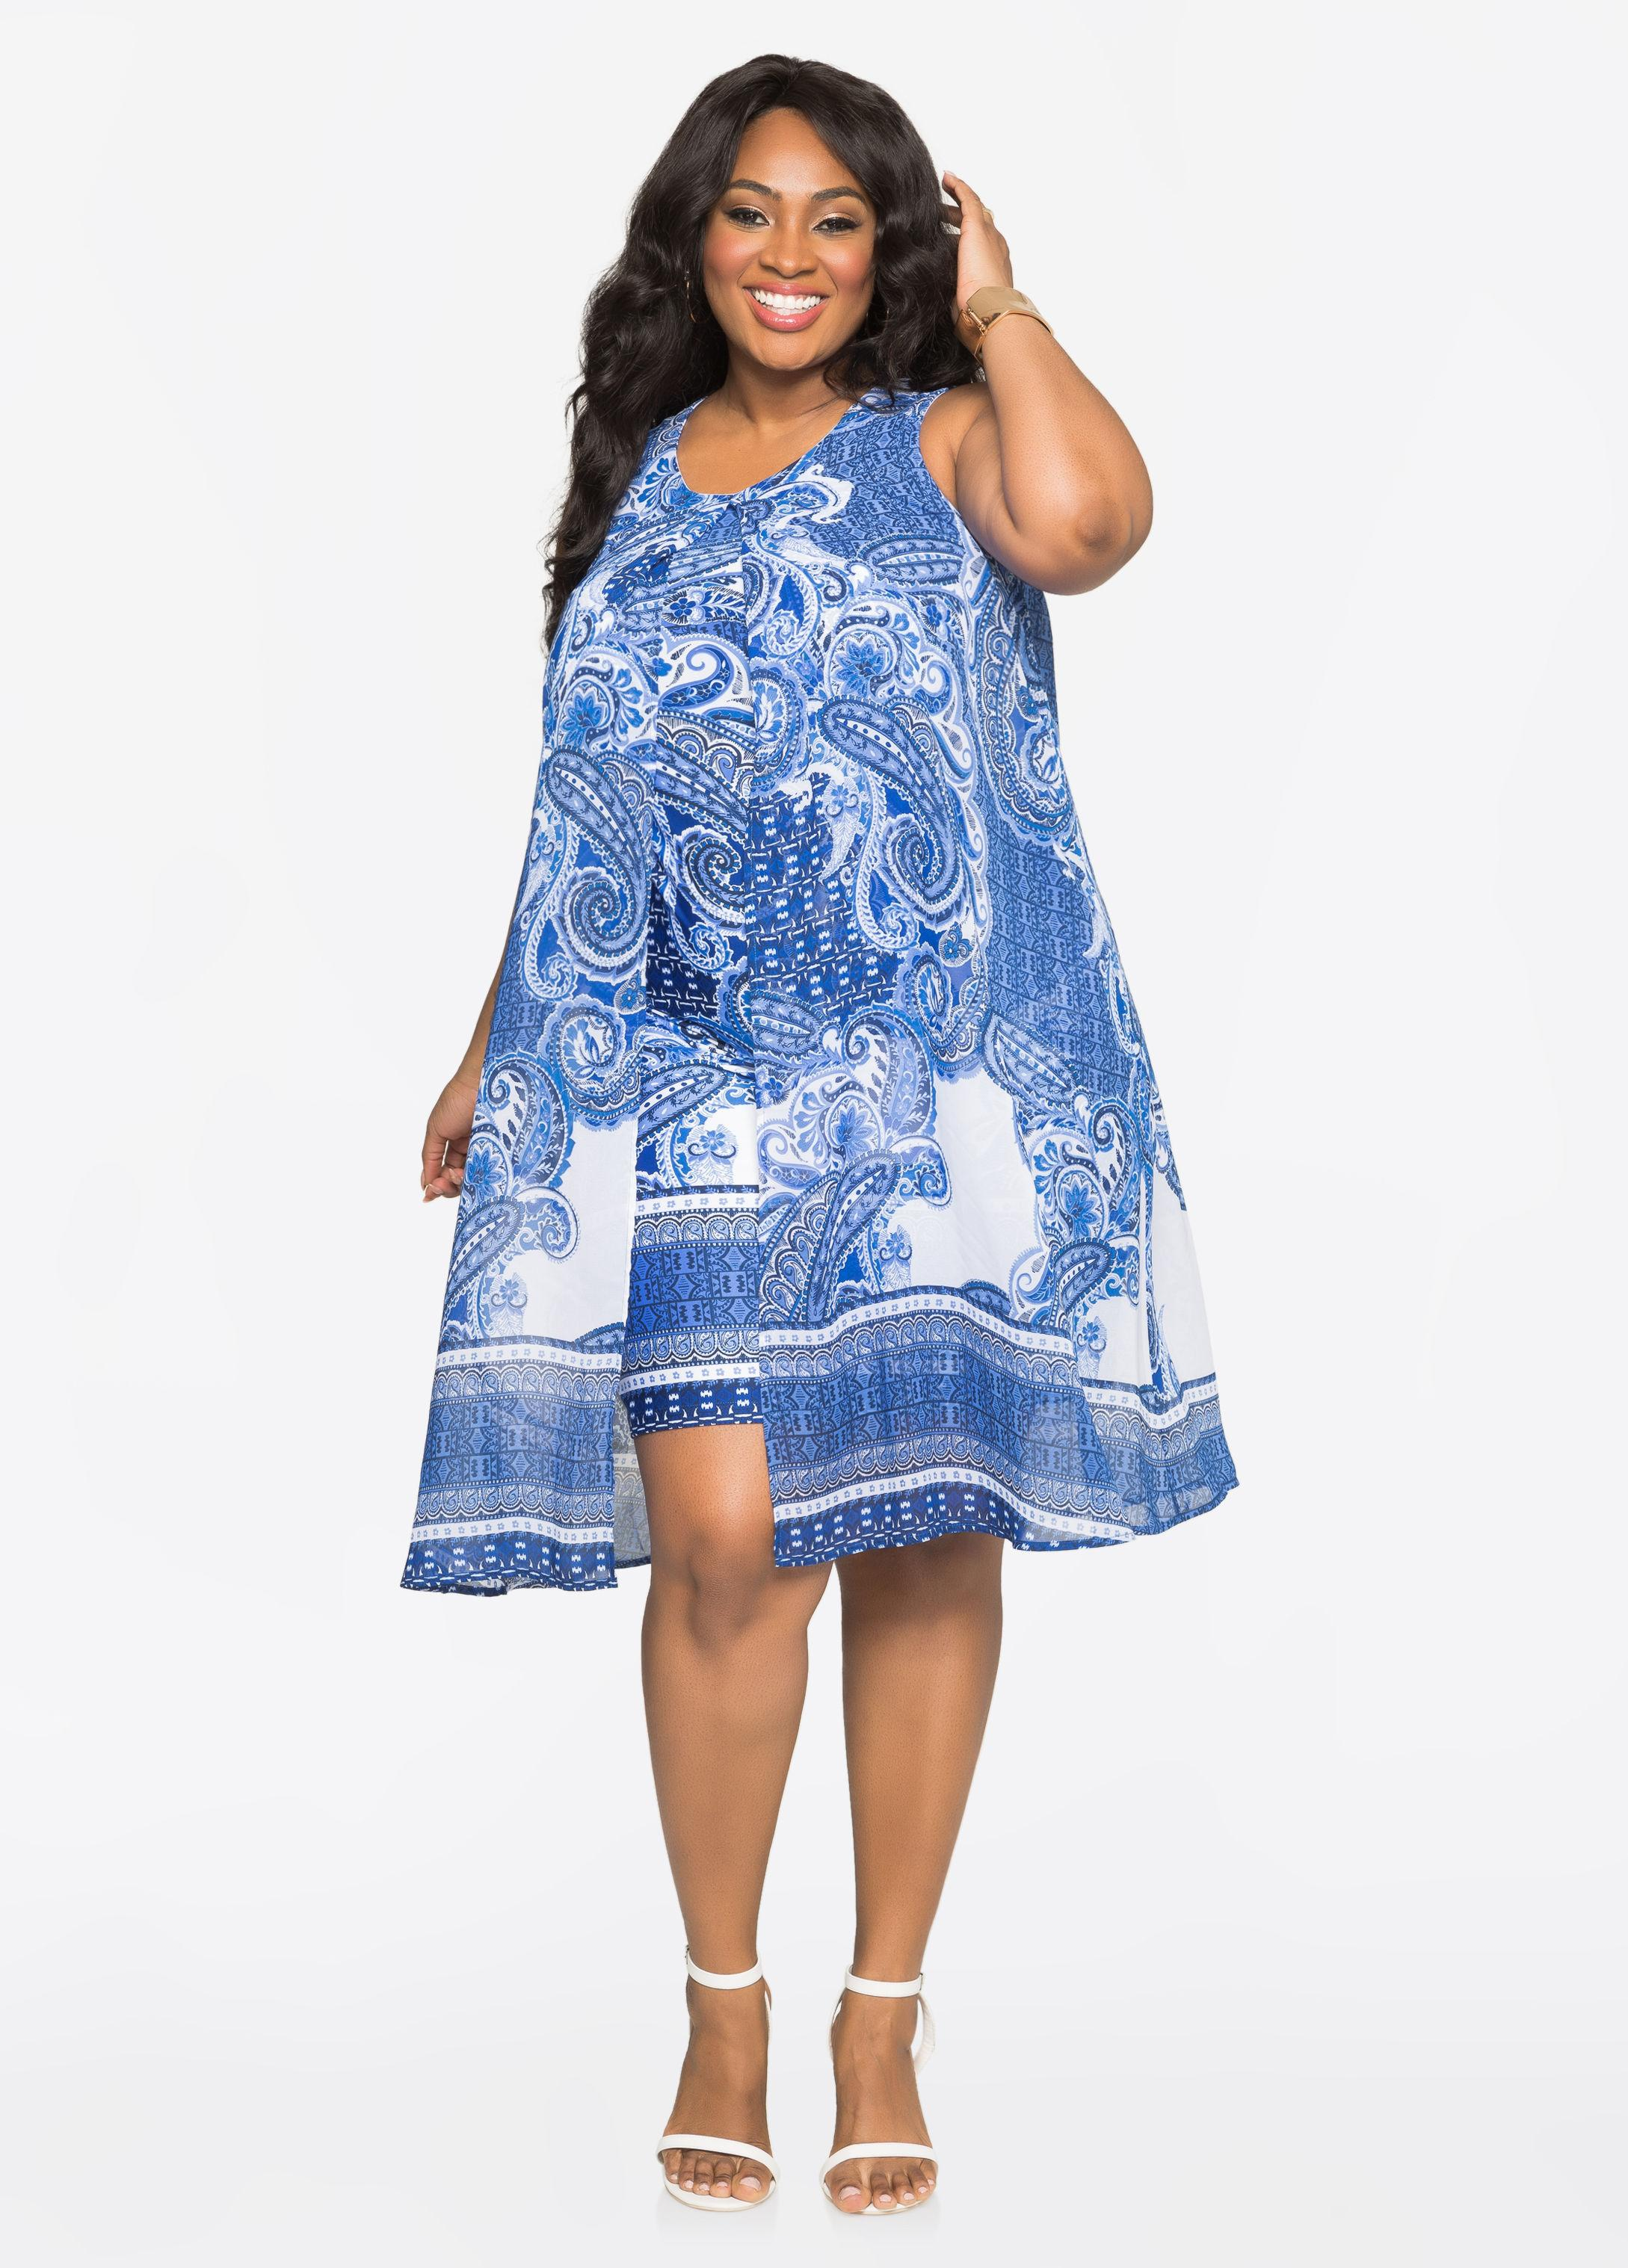 Ashley Stewart is an American plus size women's clothing company and lifestyle brand, which was founded in The name Ashley Stewart was inspired by Laura Ashley and Martha Stewart, who the company saw as icons of upscale Americana.